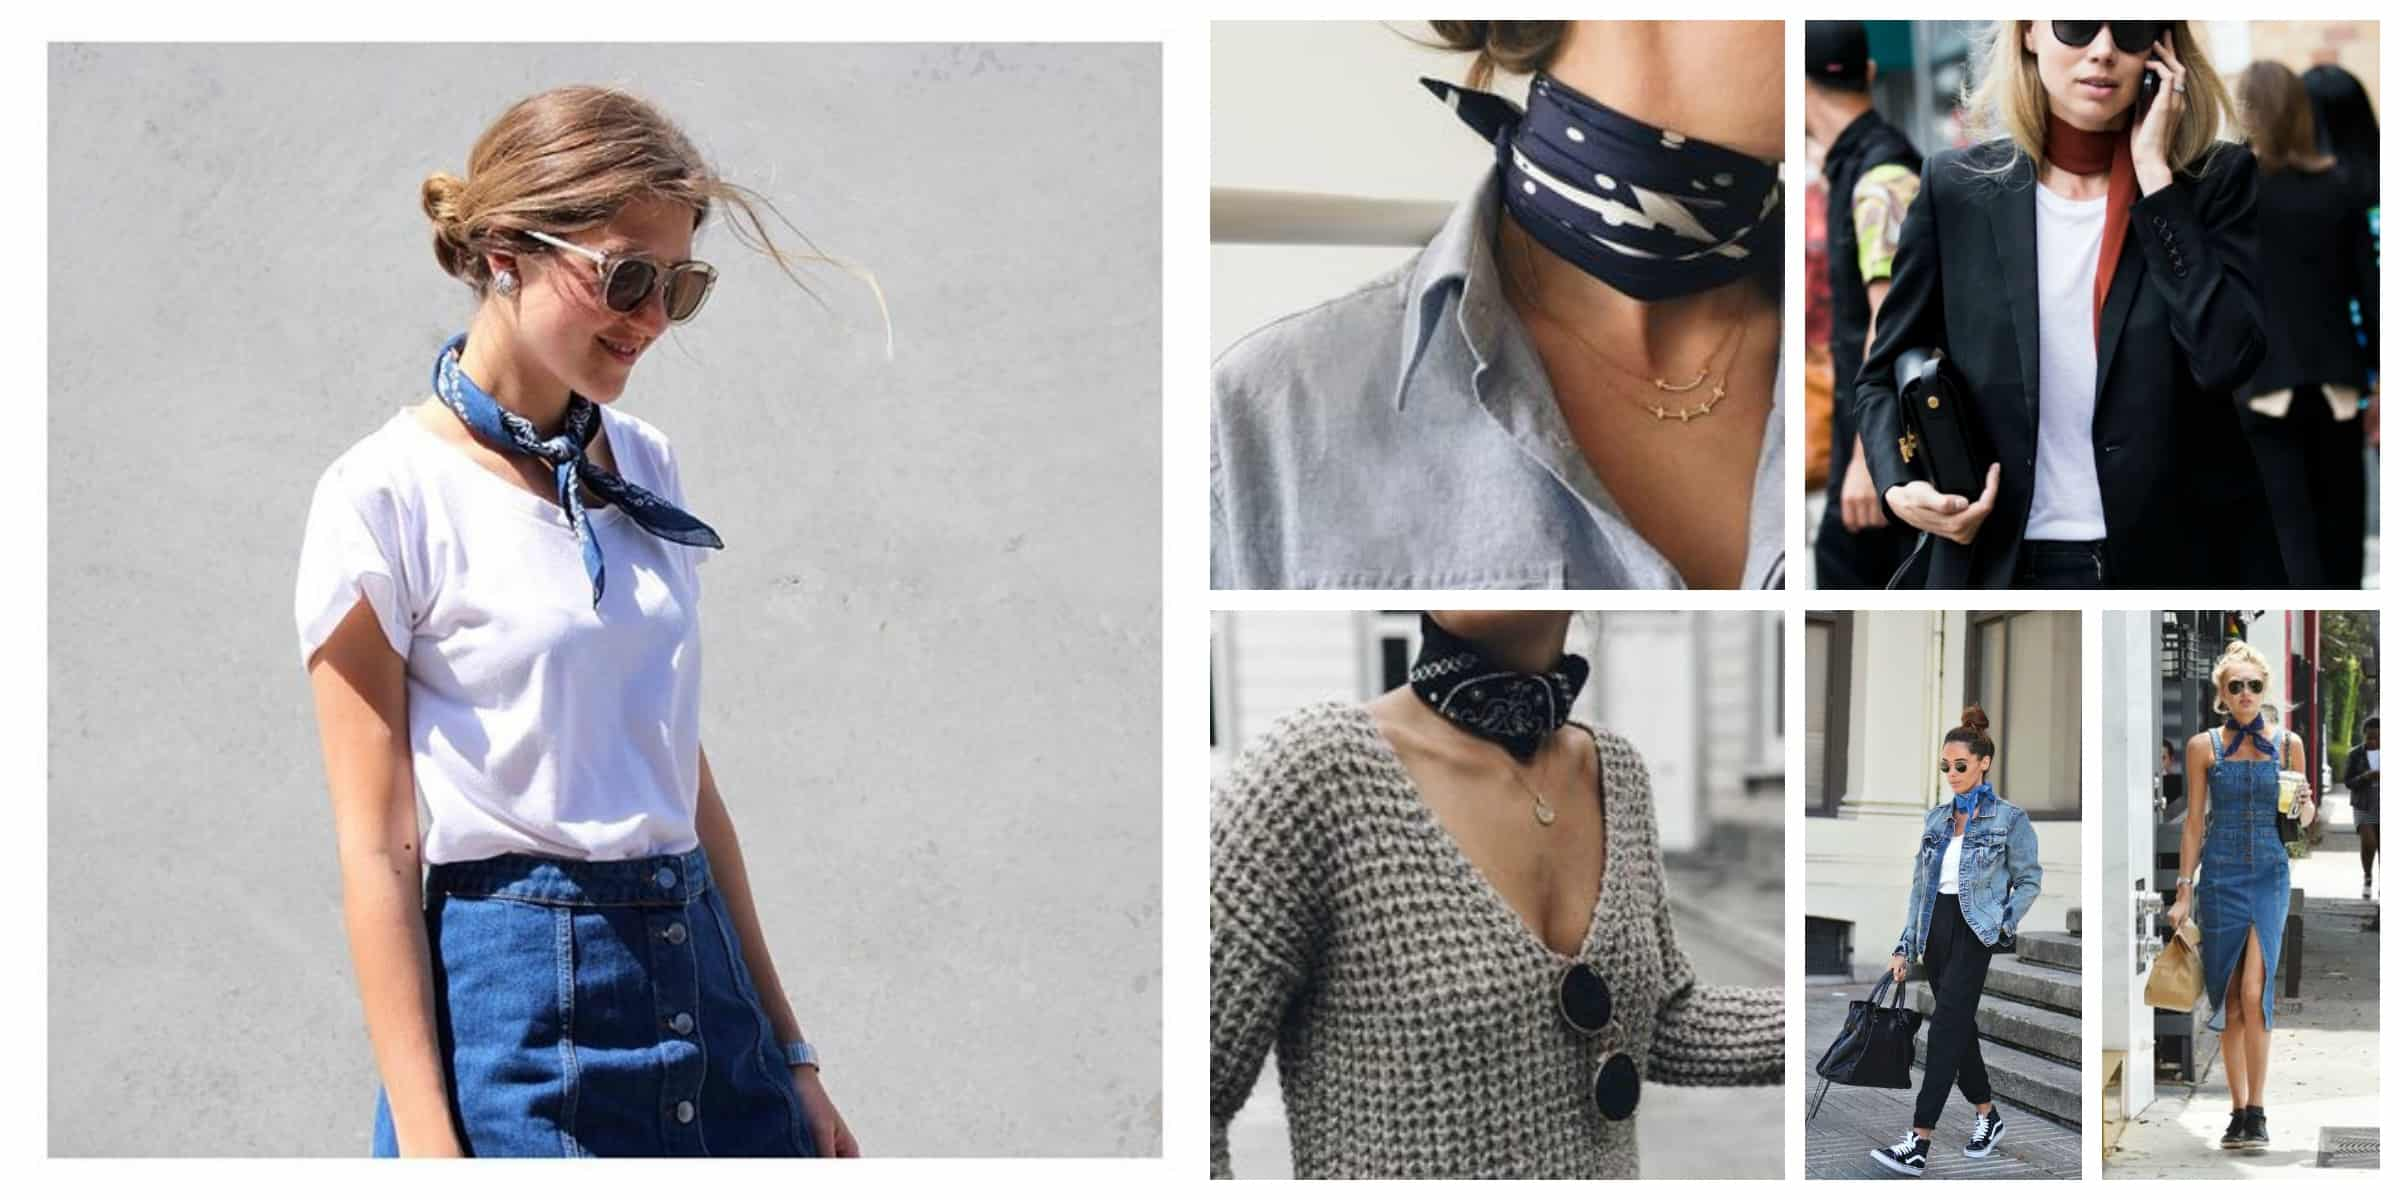 dd3830bca317c How To Tie A Scarf Around Your Neck 50 S Style - The Best Desain Of Tie